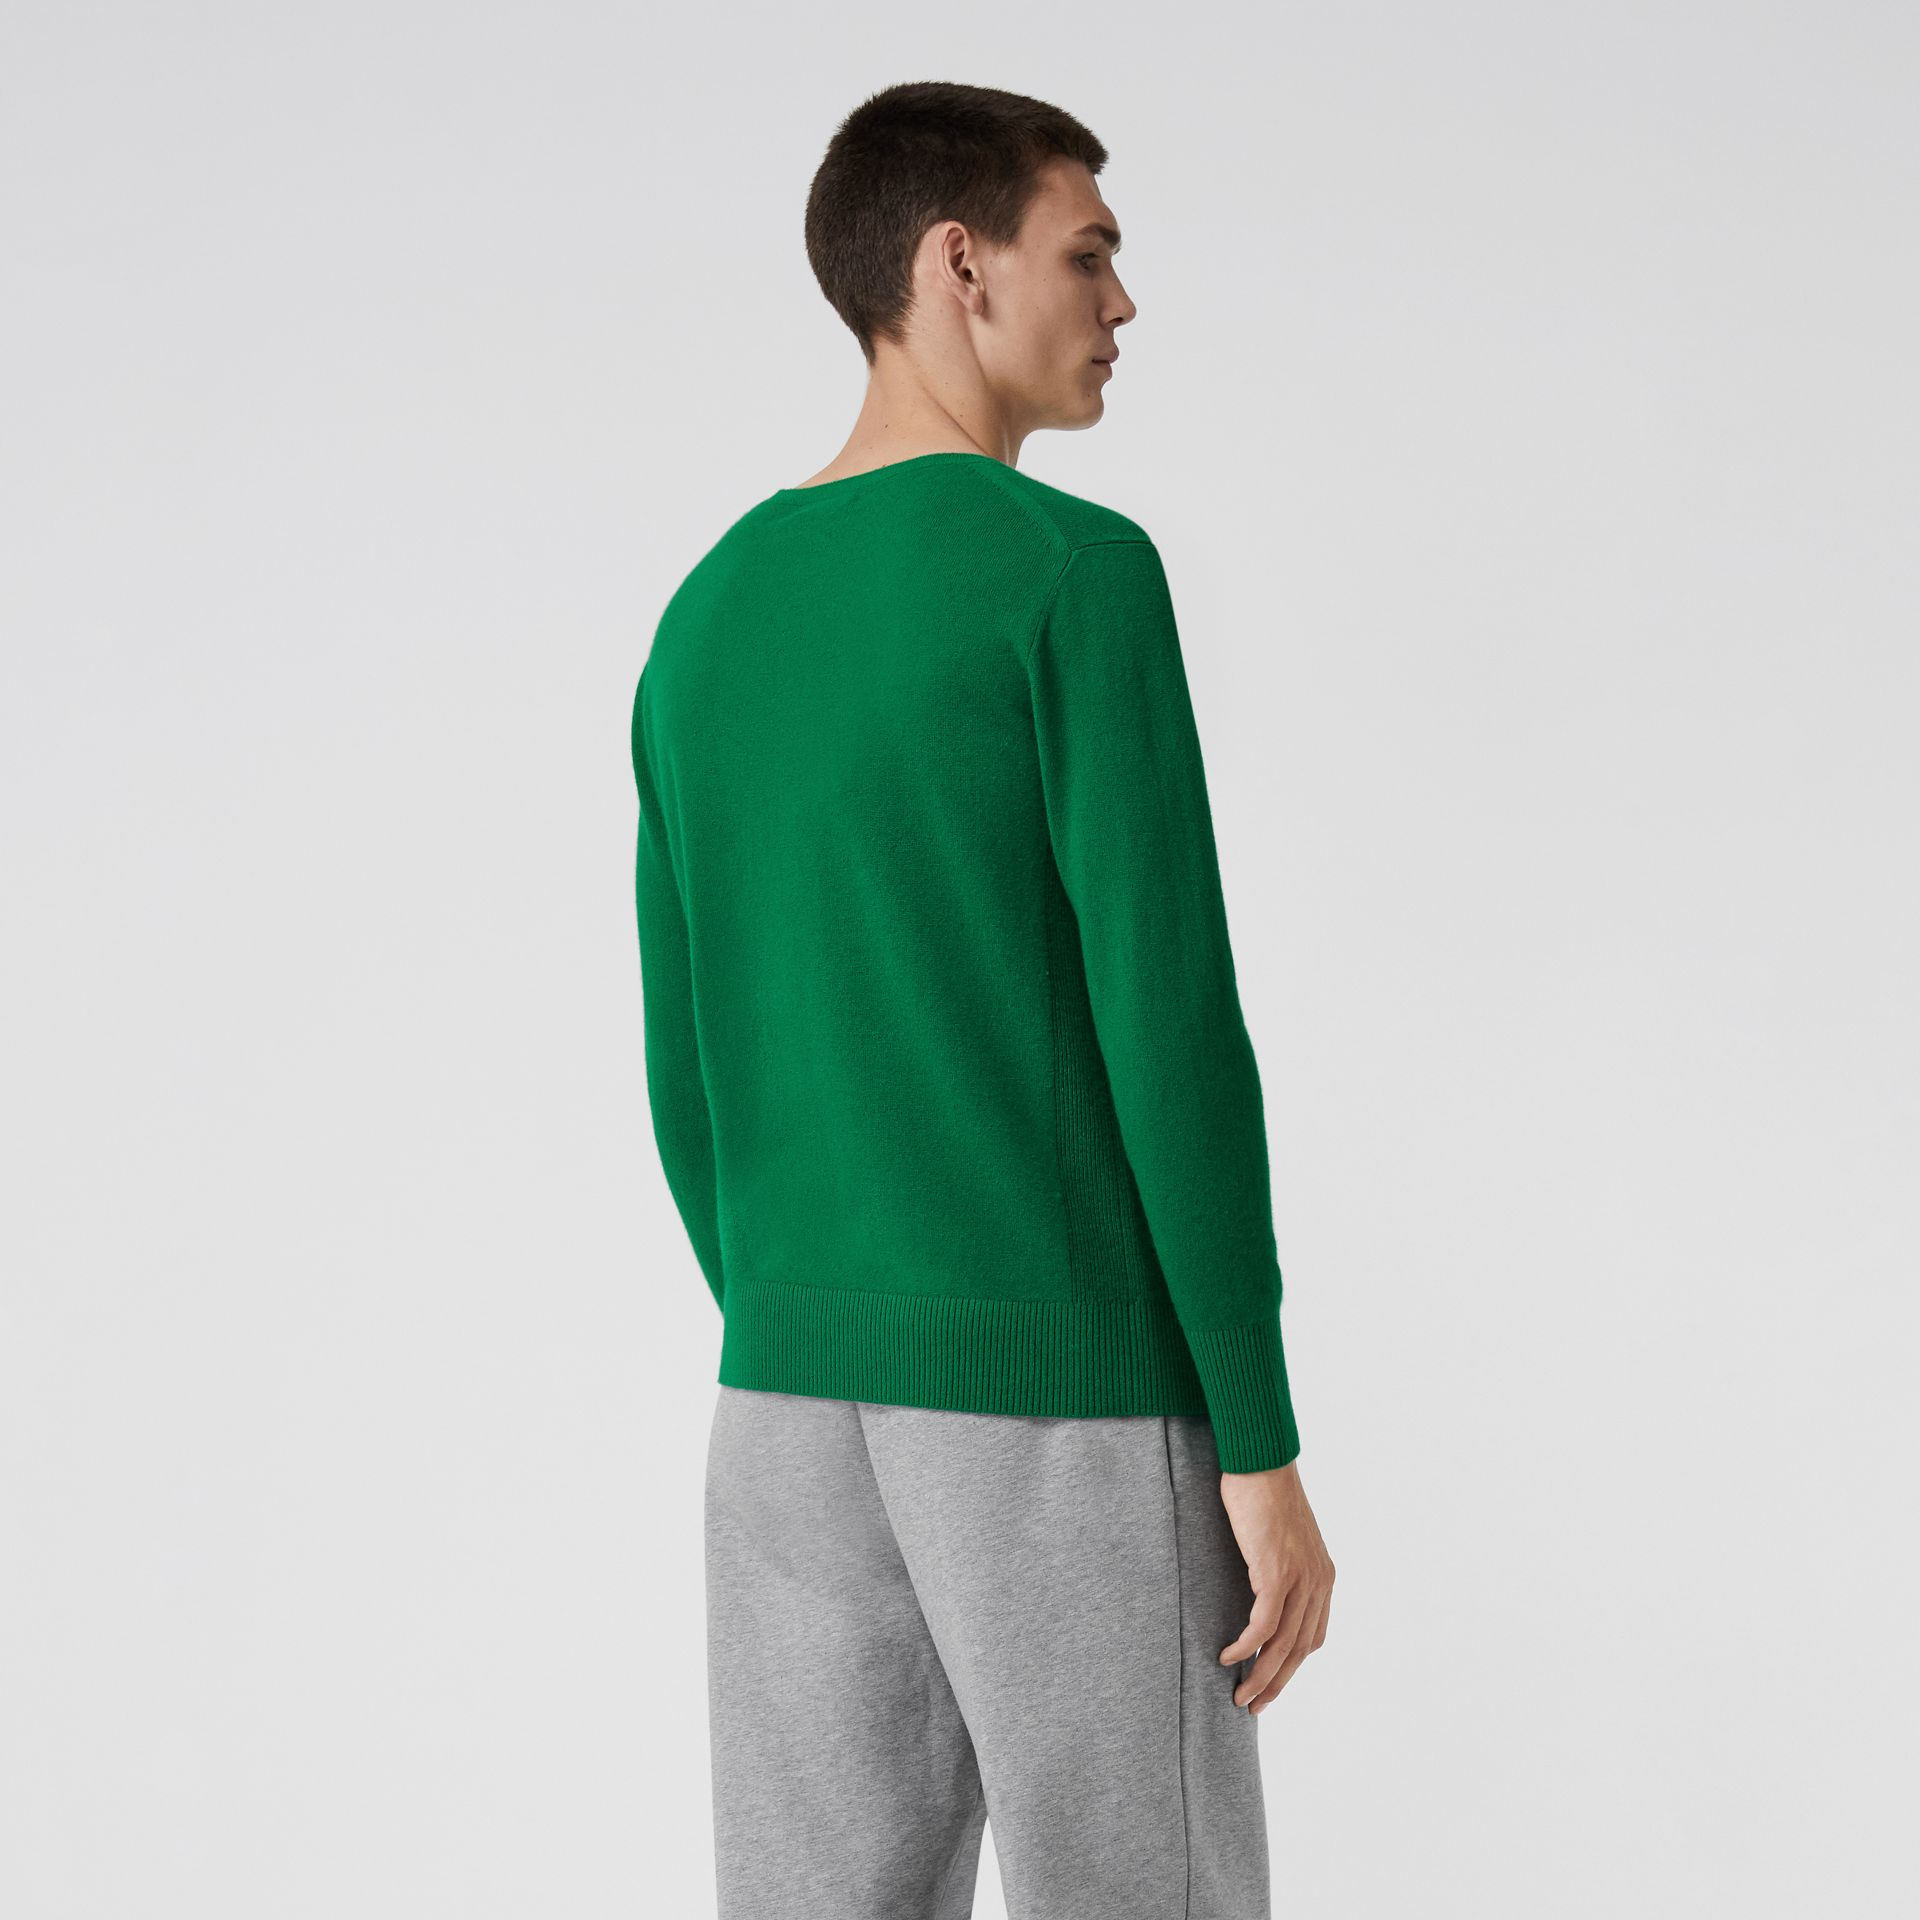 Embroidered Archive Logo Cashmere Sweater in Bright Green - Men | Burberry Canada - gallery image 2